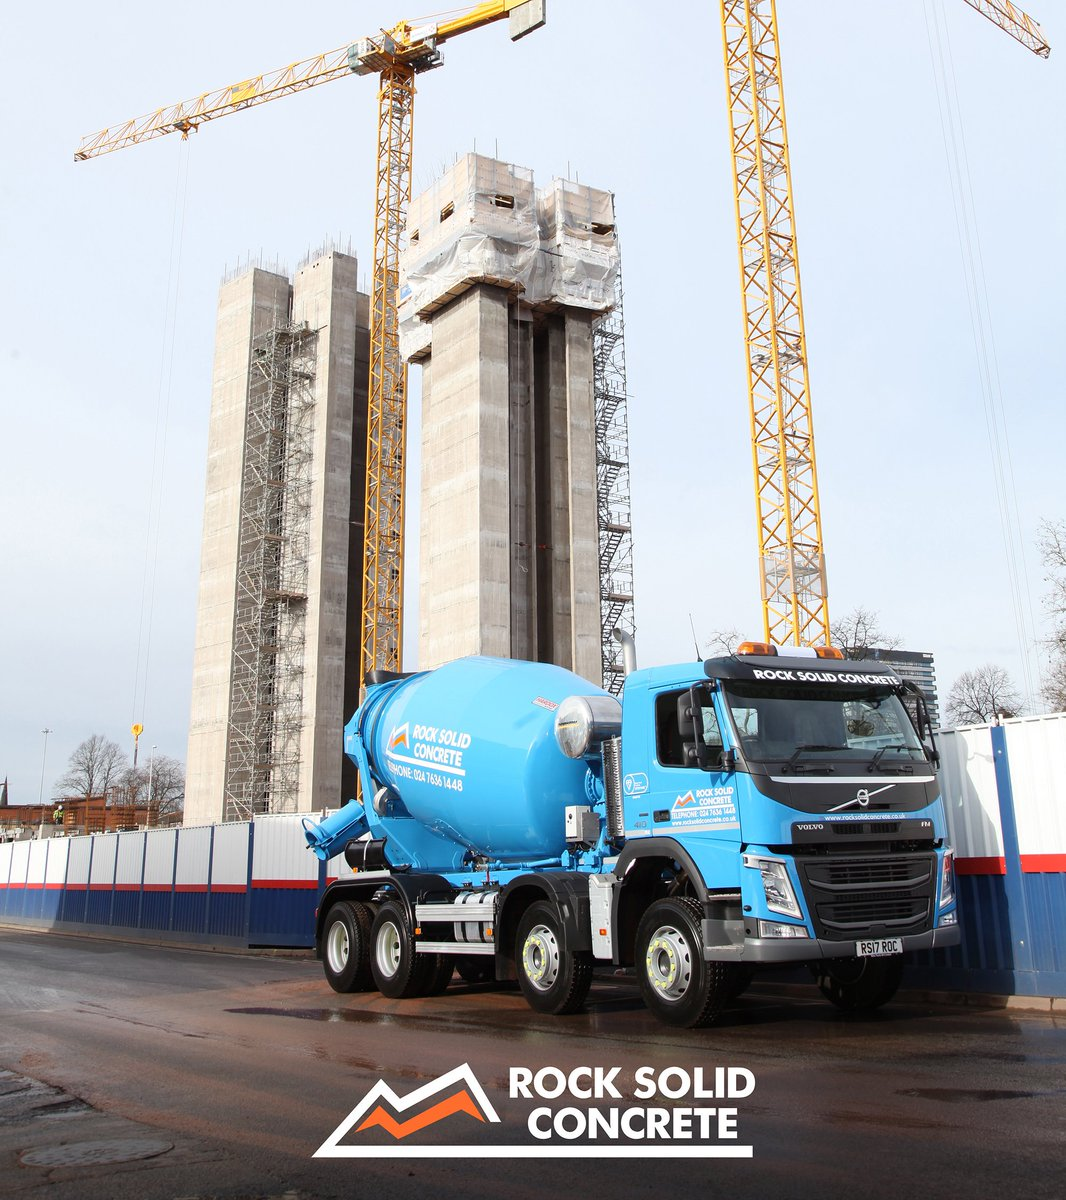 Rock Solid Concrete >> Rock Solid Concrete On Twitter From Our Base In Coventry We Can